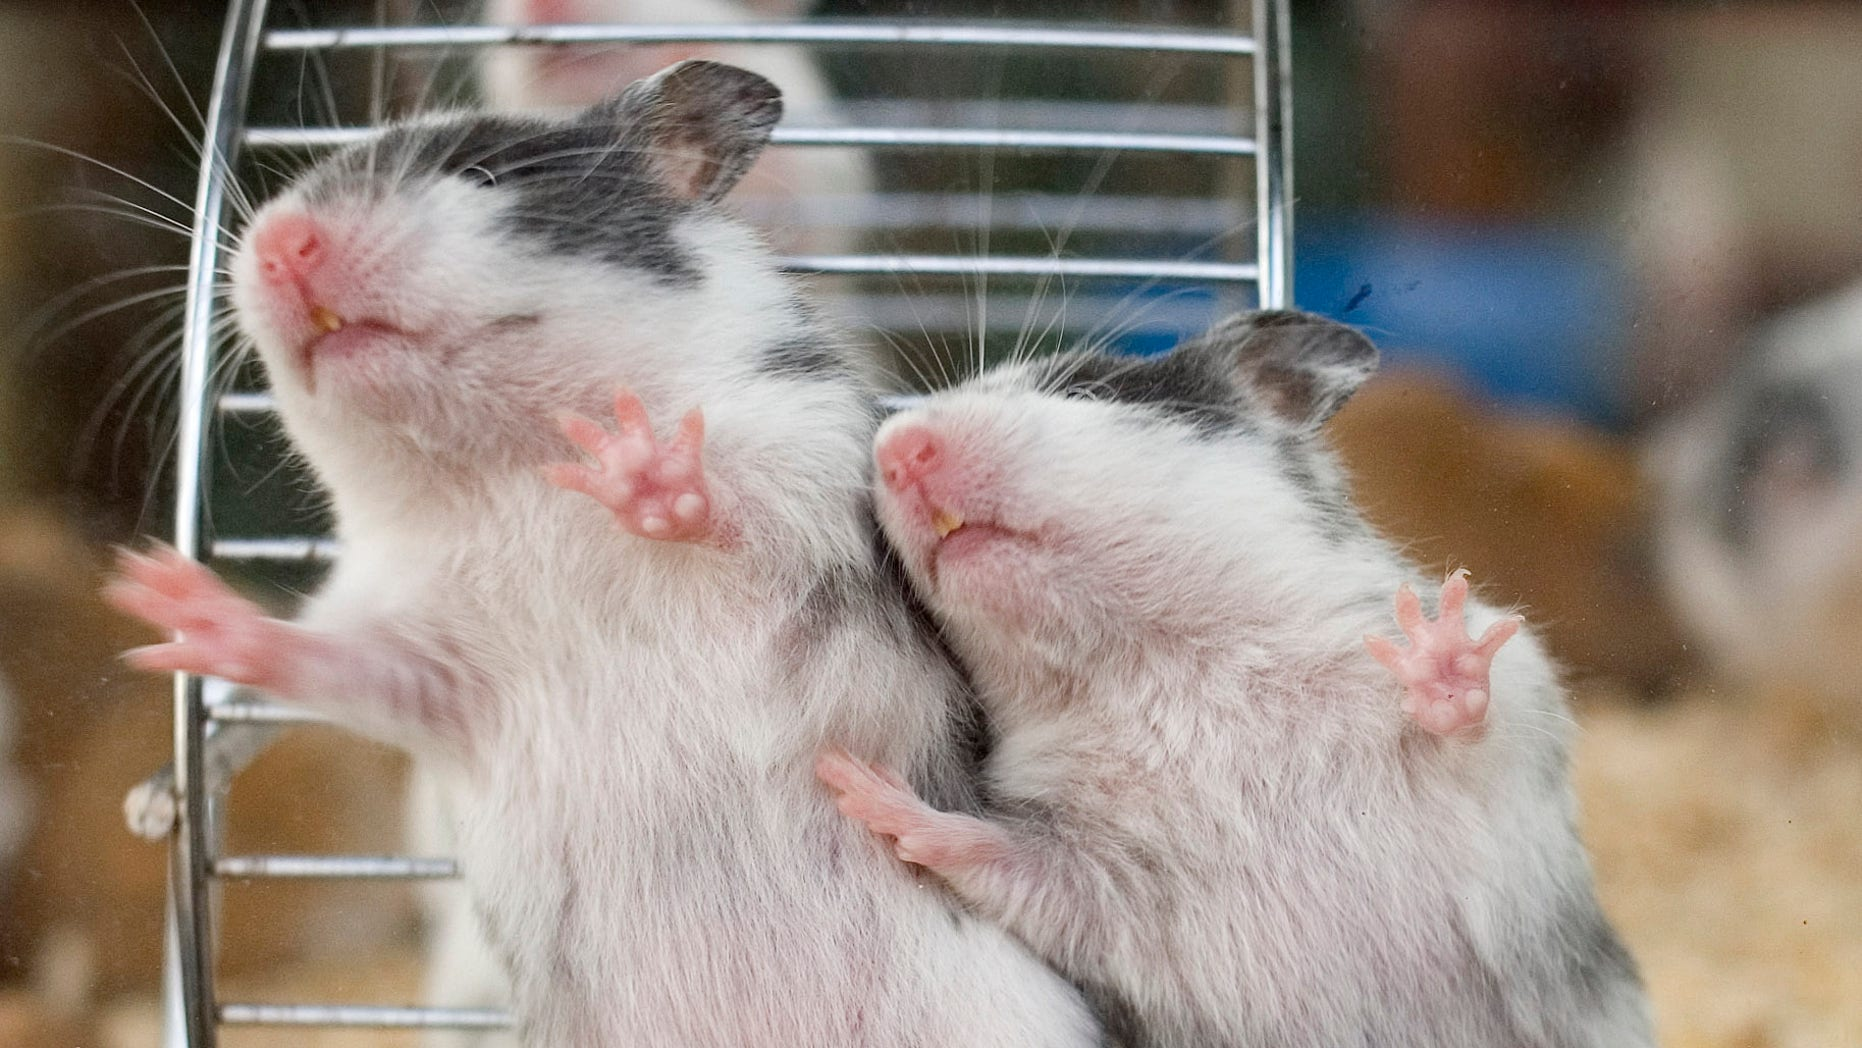 File photo. Hamsters scramble up the side of a glass cage at a pet market in Paris August 19, 2007.